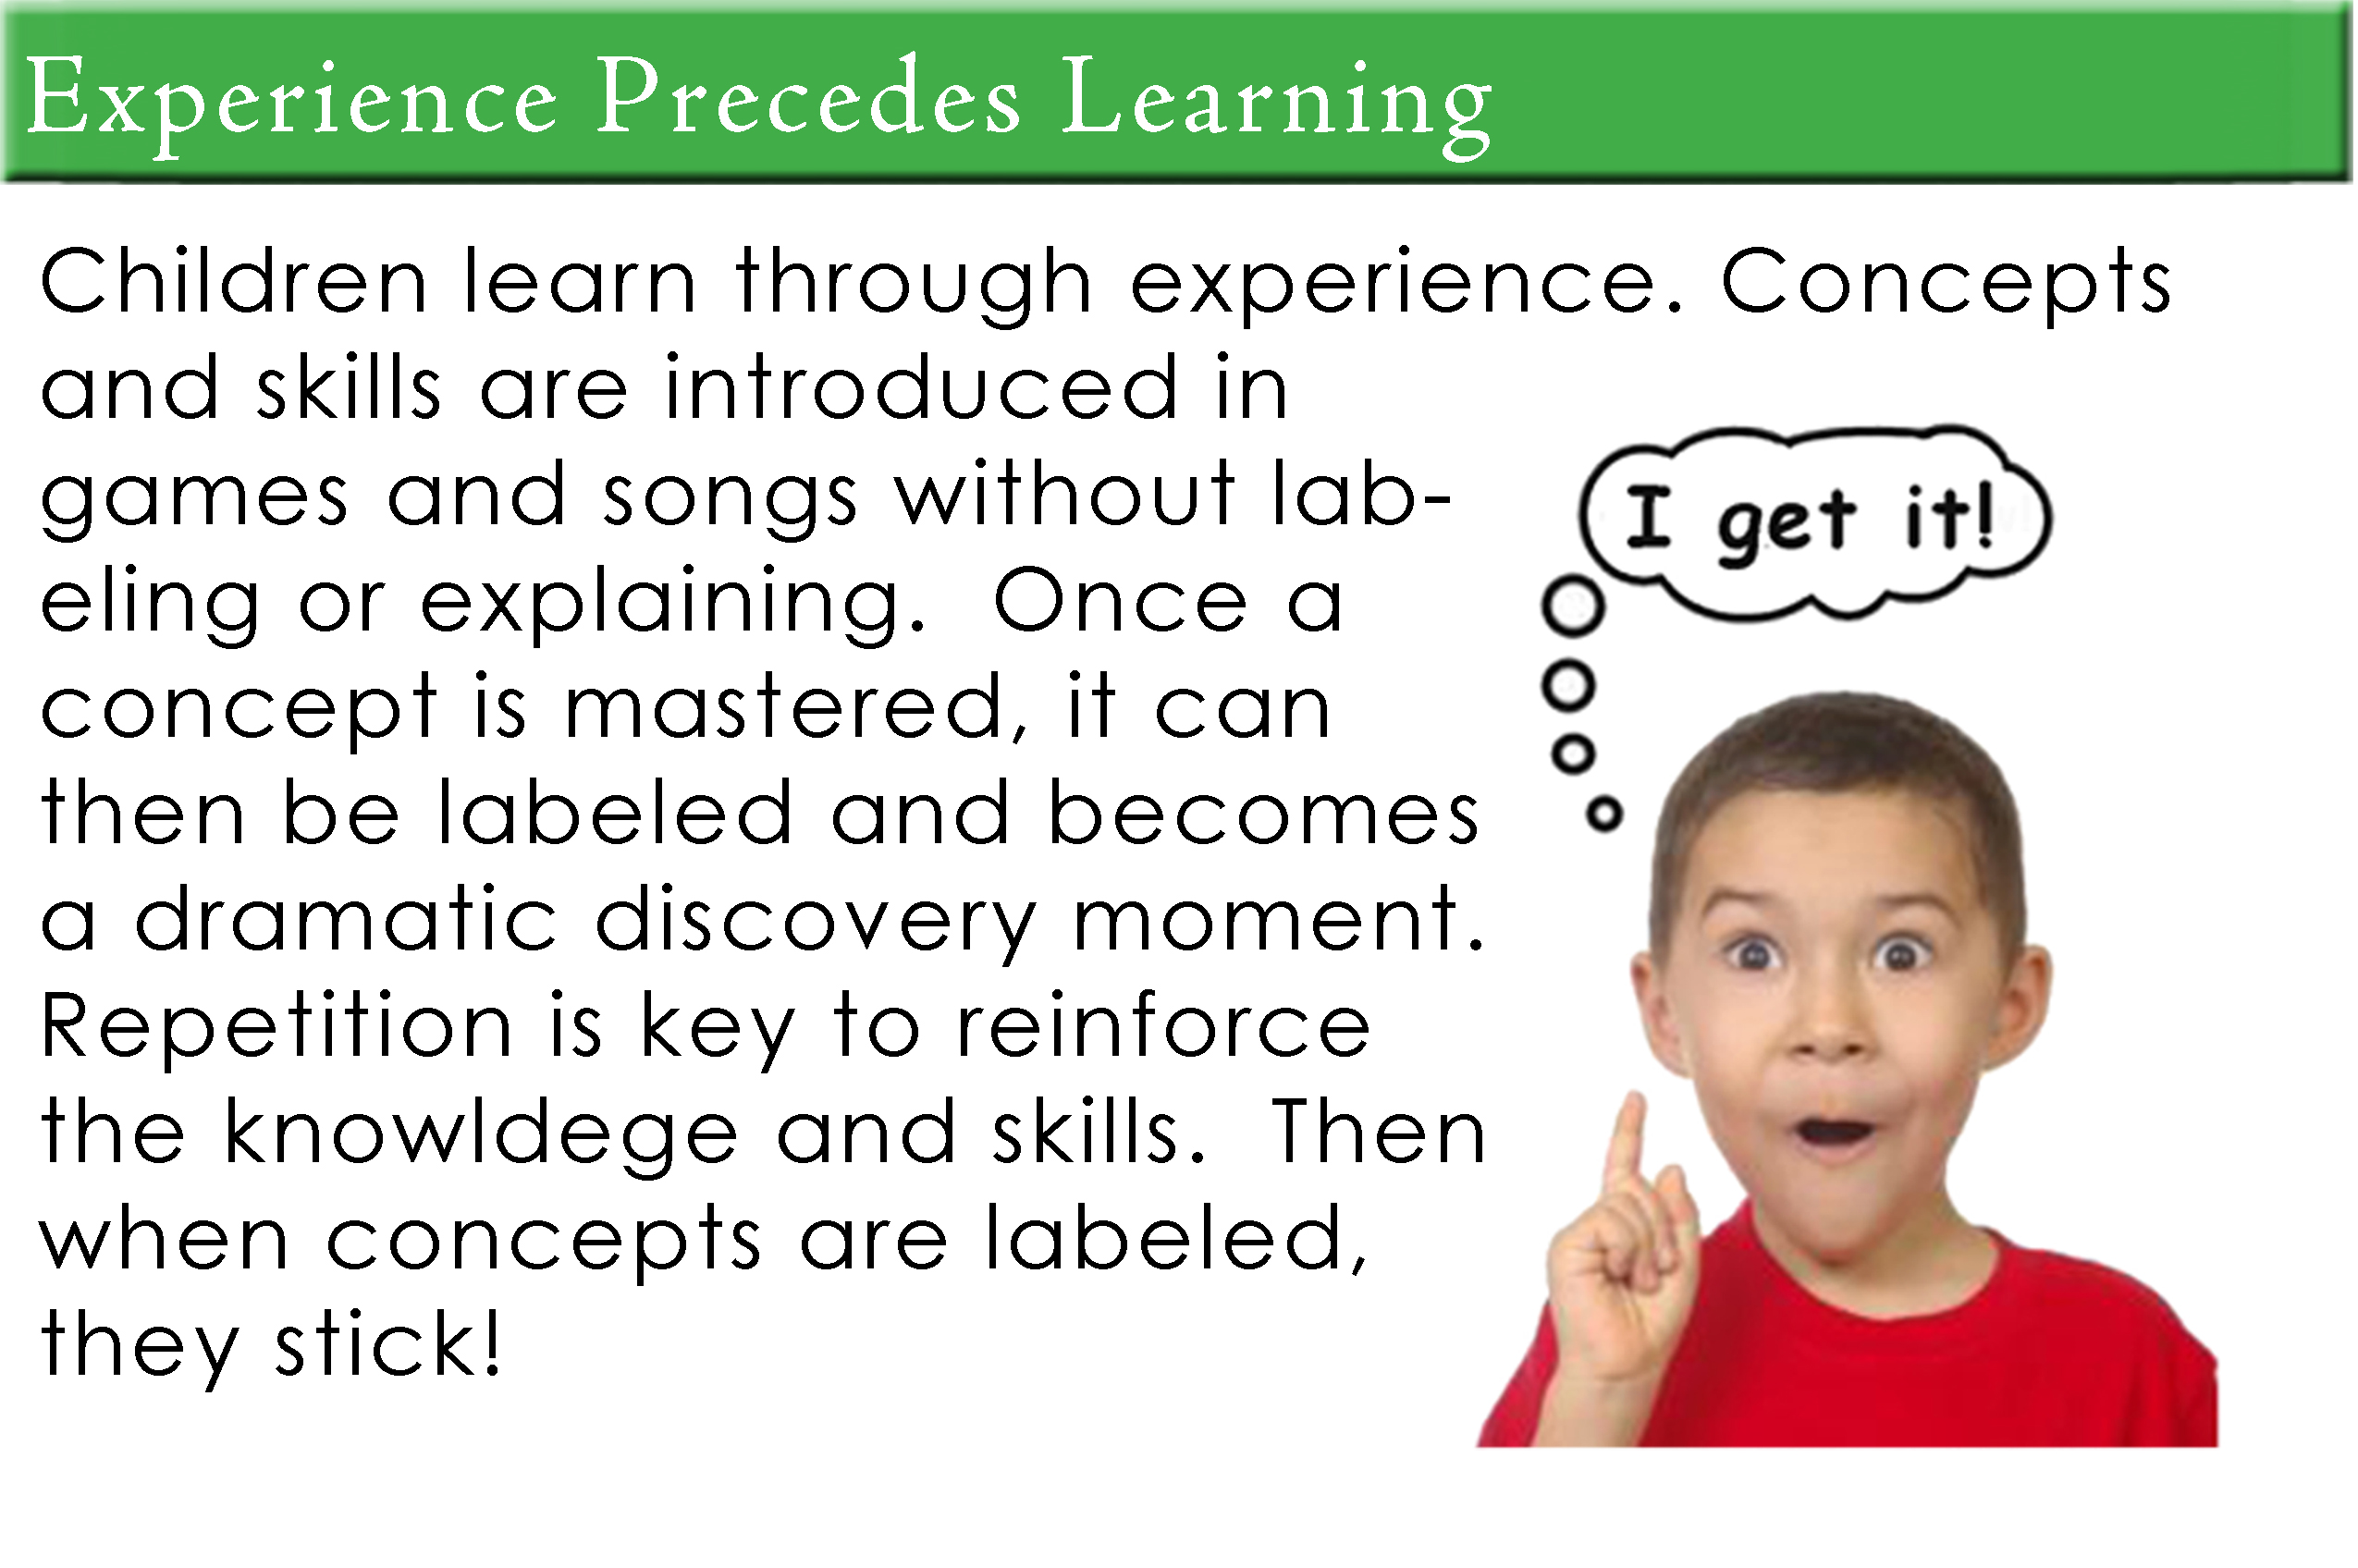 Experience Precedes Learning